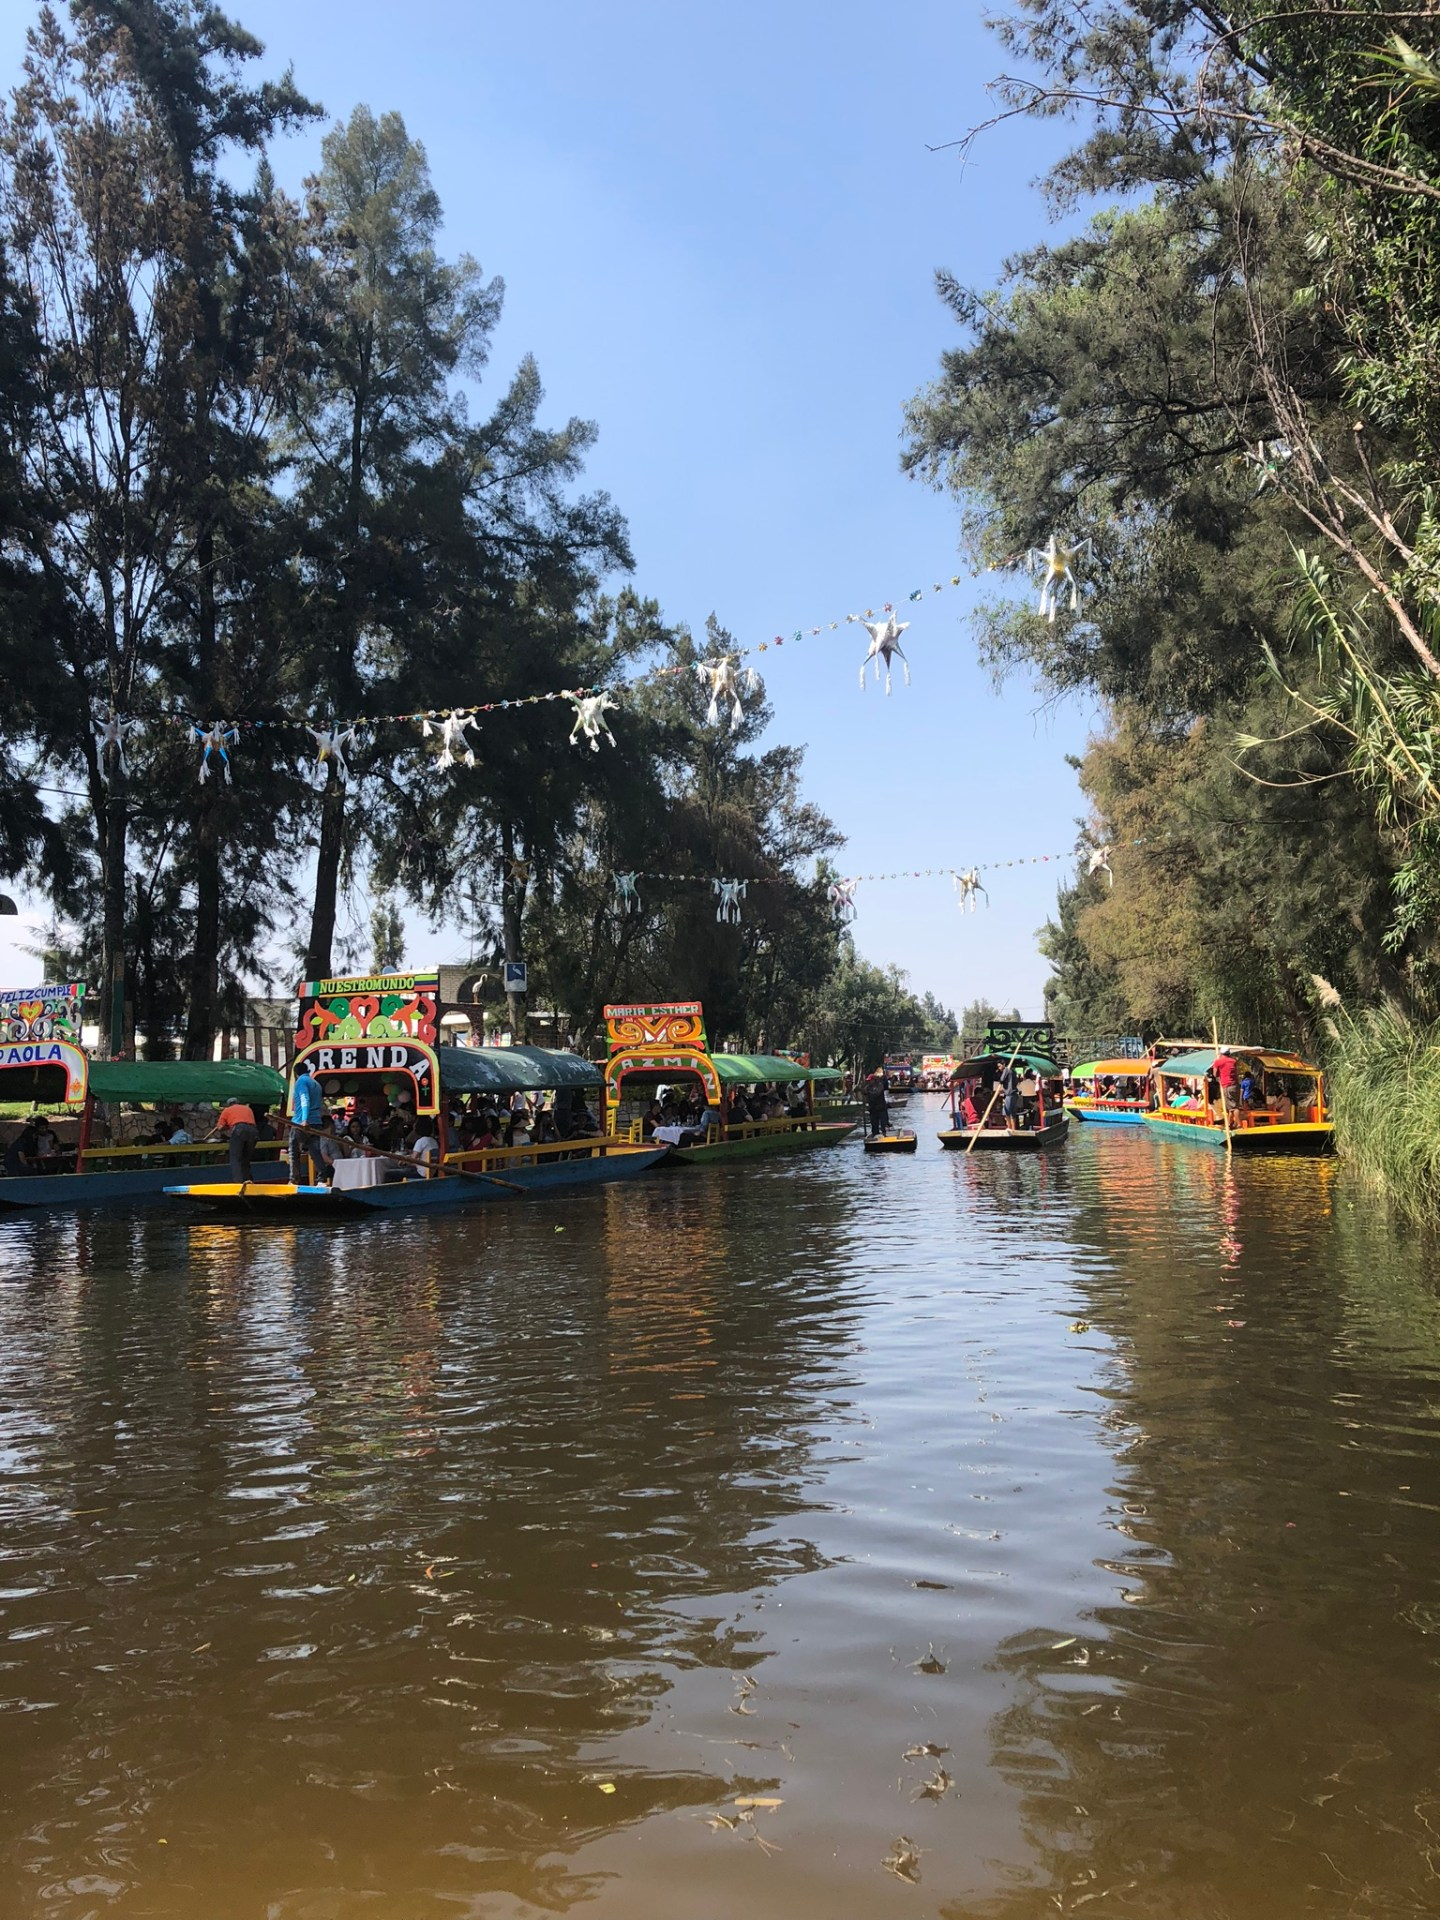 The canals of Xochimilco